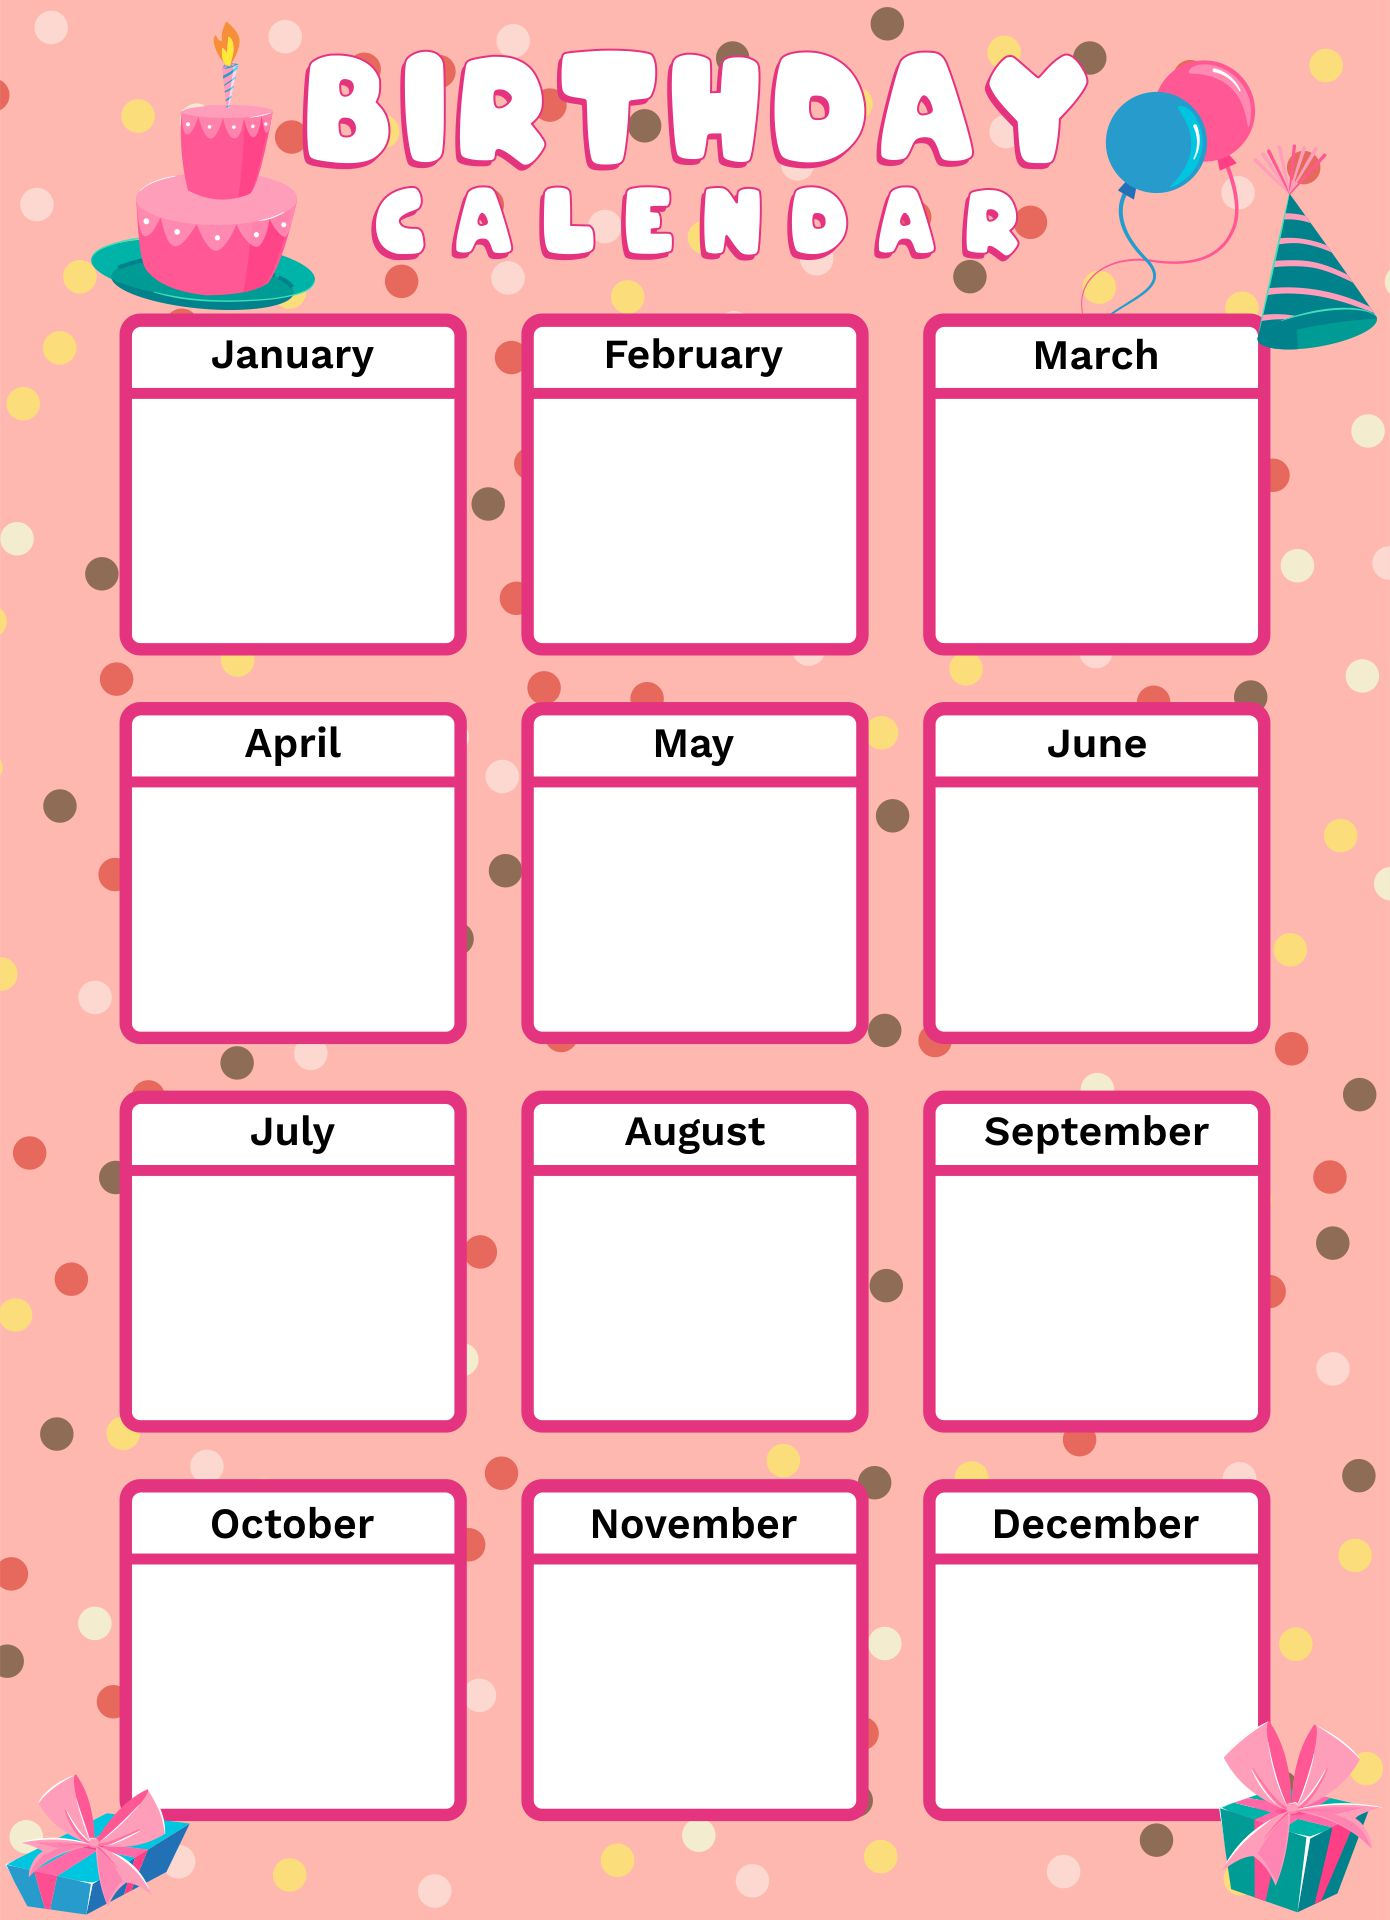 4 Images of Printable Birthday Calendar Cupcakes